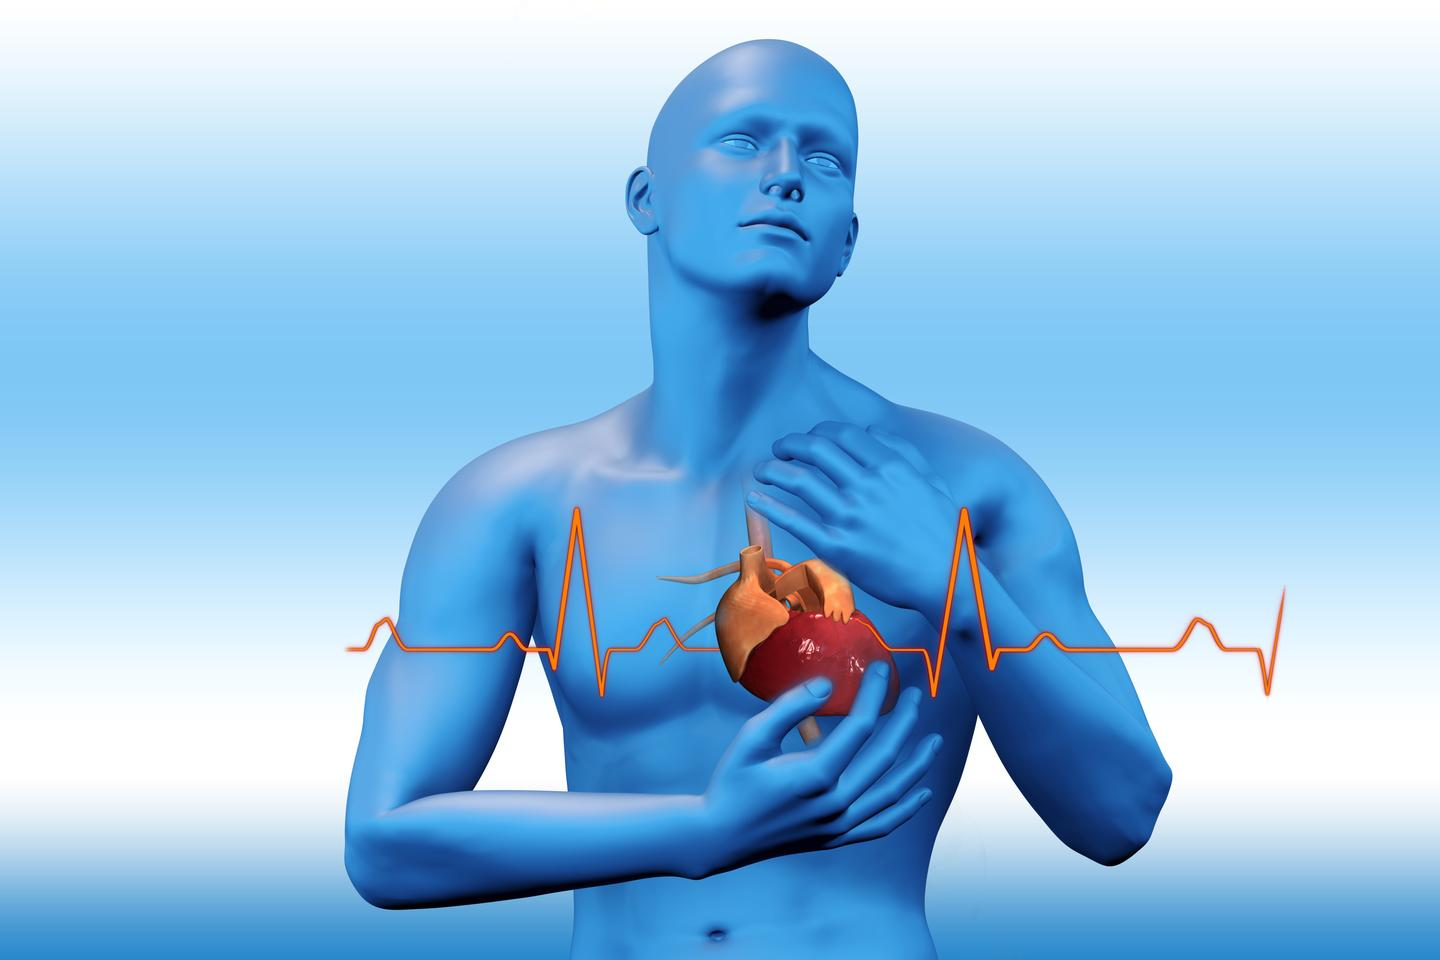 An injection of polymer nanoparticles could save the lives of heart attack victims (Image: Shutterstock)